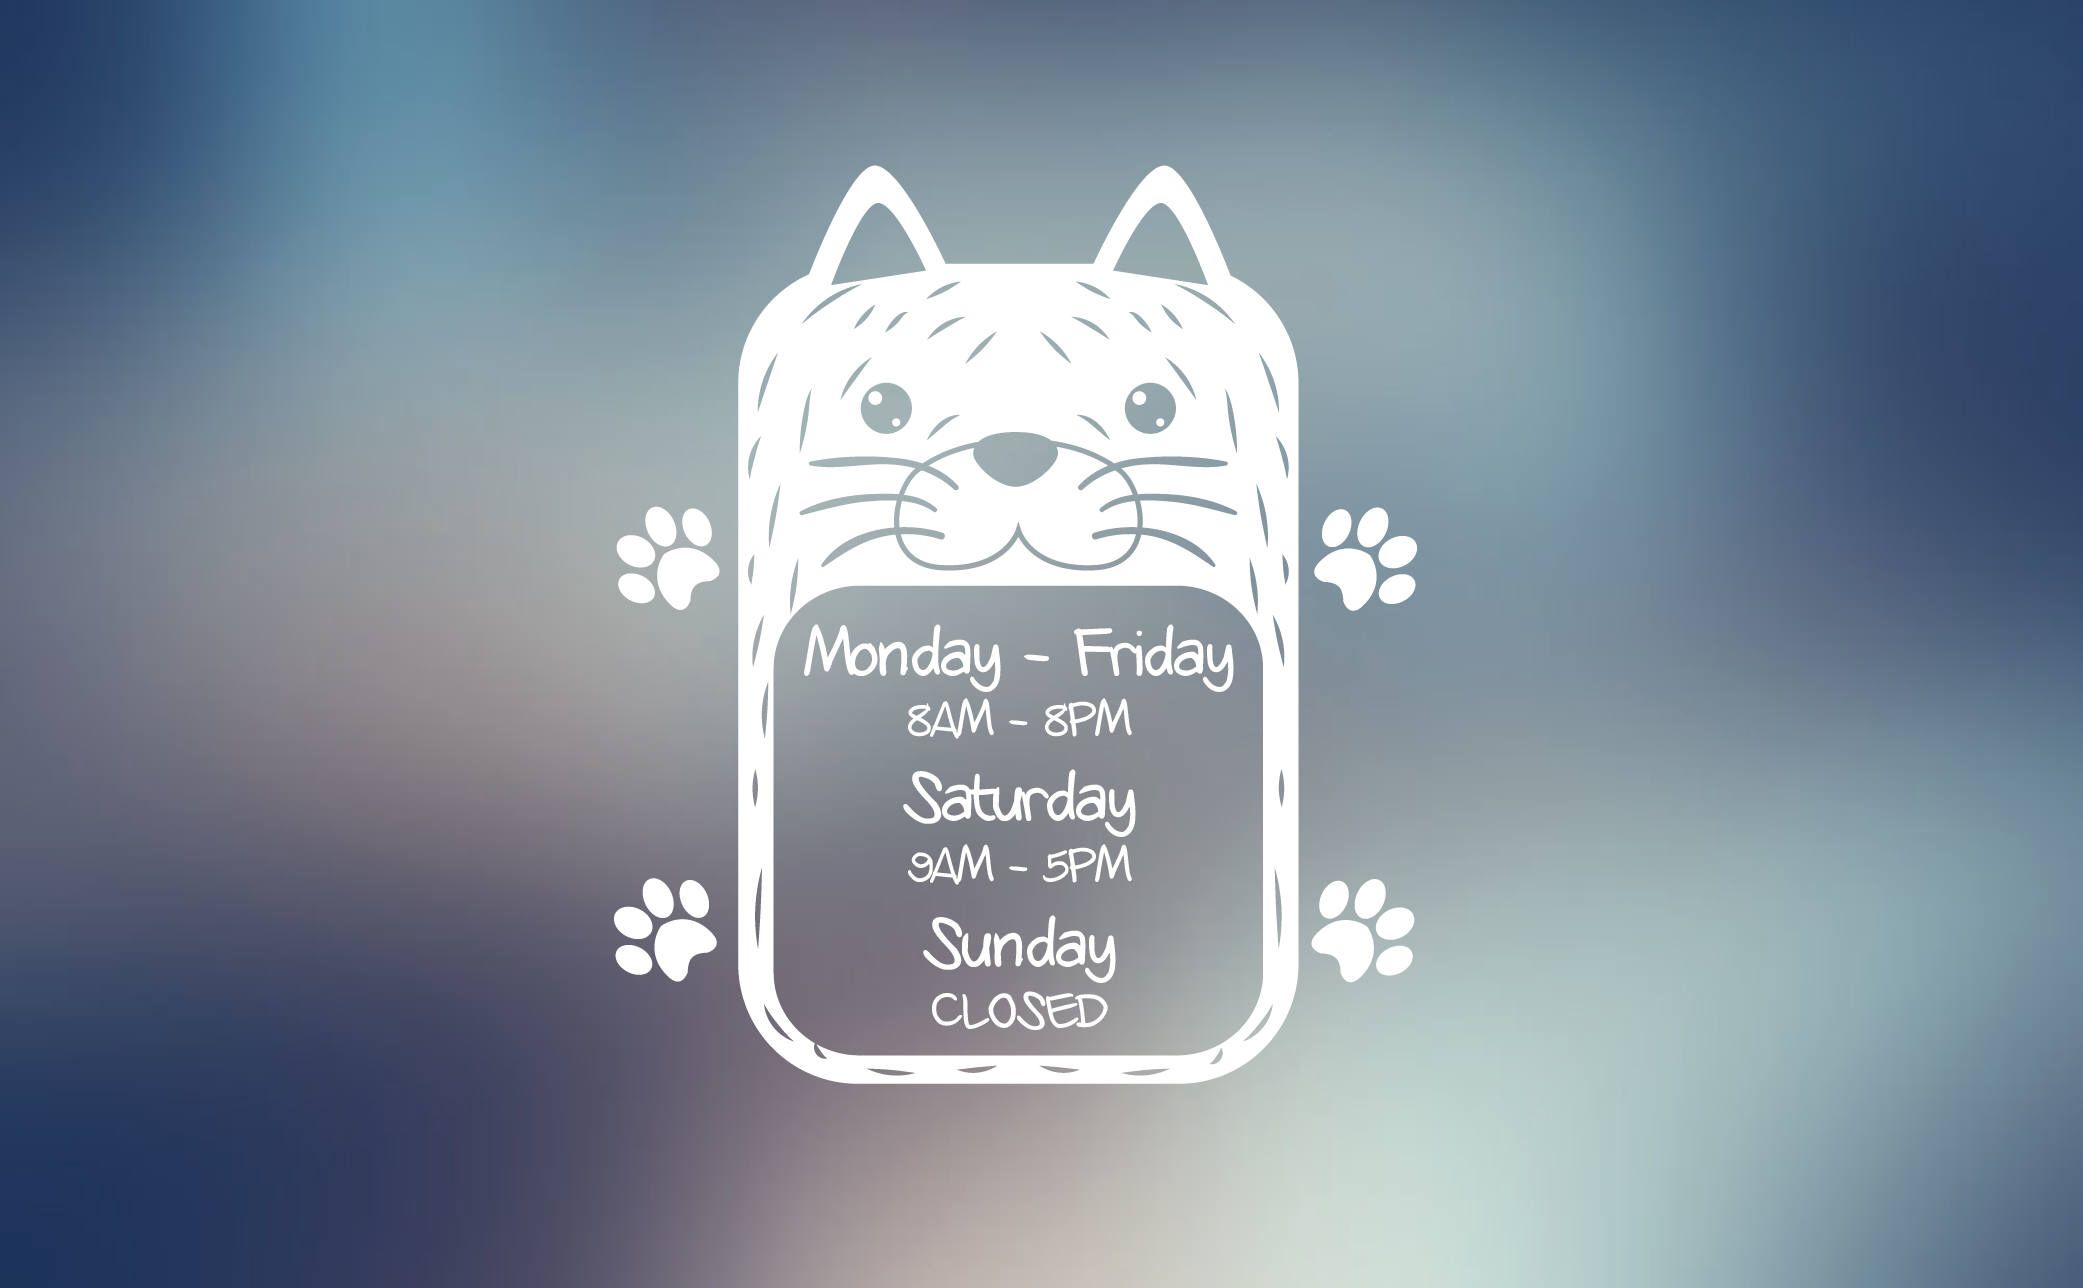 Custom Store Hours Business Hours Opening Hours Work Hours Decal For Your Pet Store Vererinary Clinic Dog Cat Grooming Storefront Pet Store Cat Grooming Dog Cat